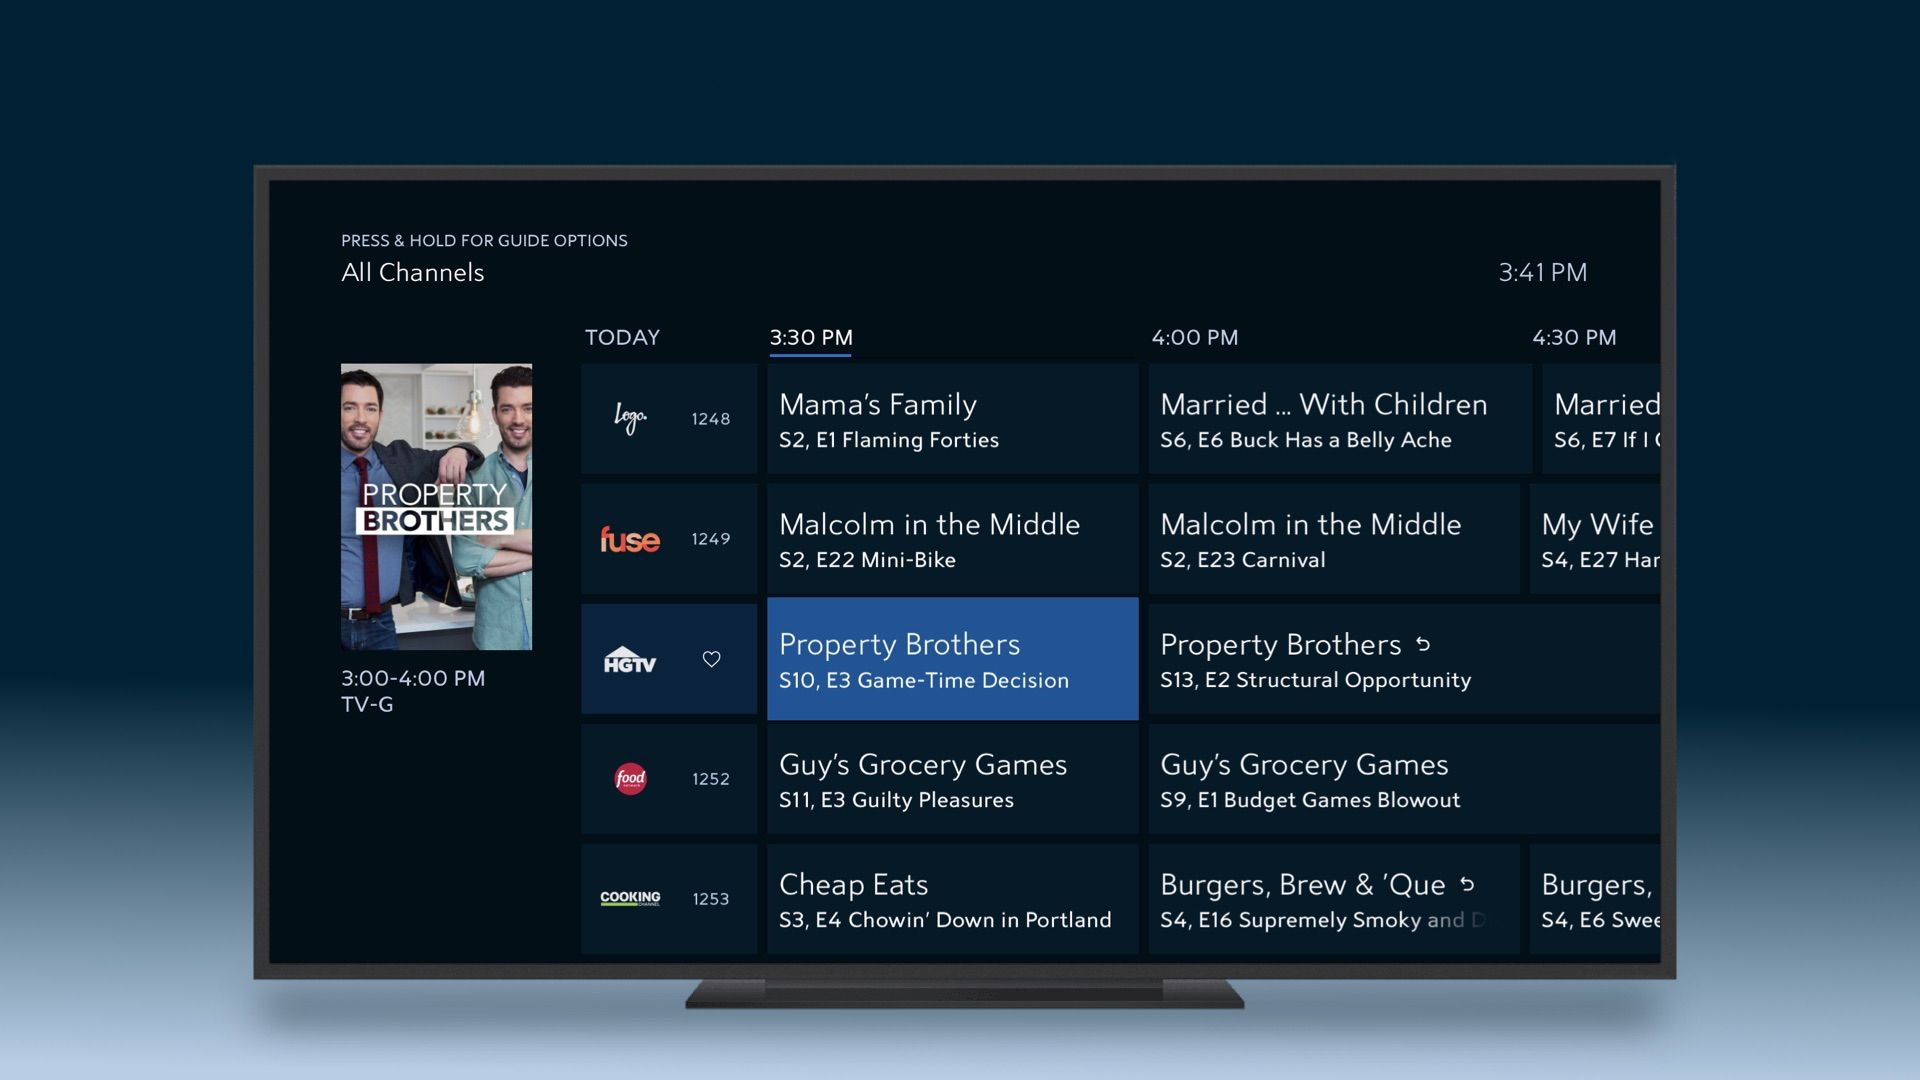 Spectrum S Streaming Service What To Know About Tv Essentials Tom S Guide In 2020 Lifetime Movies Network Streaming Streaming Tv